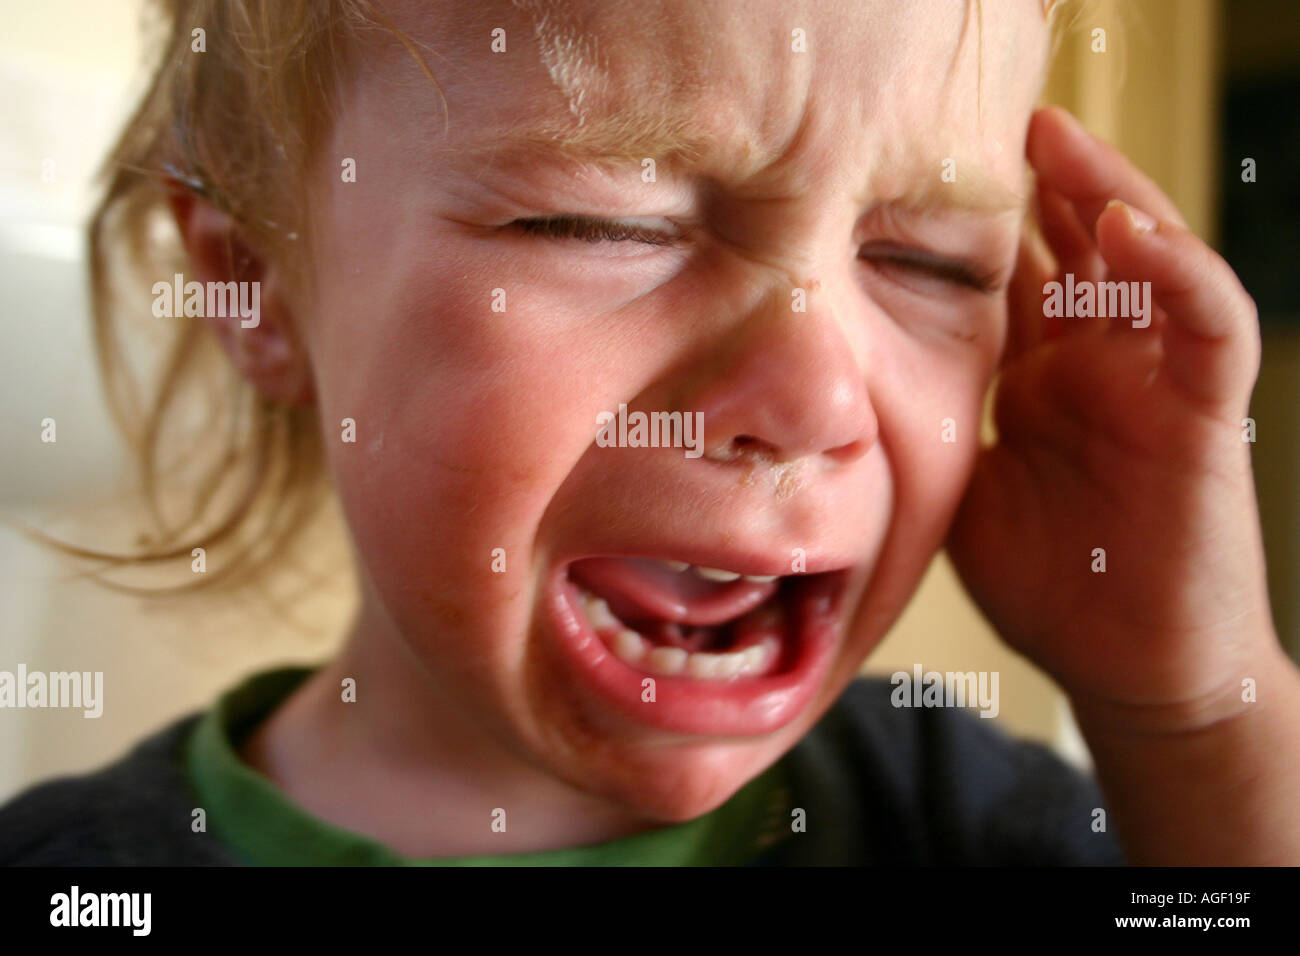 close up of toddler crying, one year old with hand on head, having a temper tantrum - Stock Image